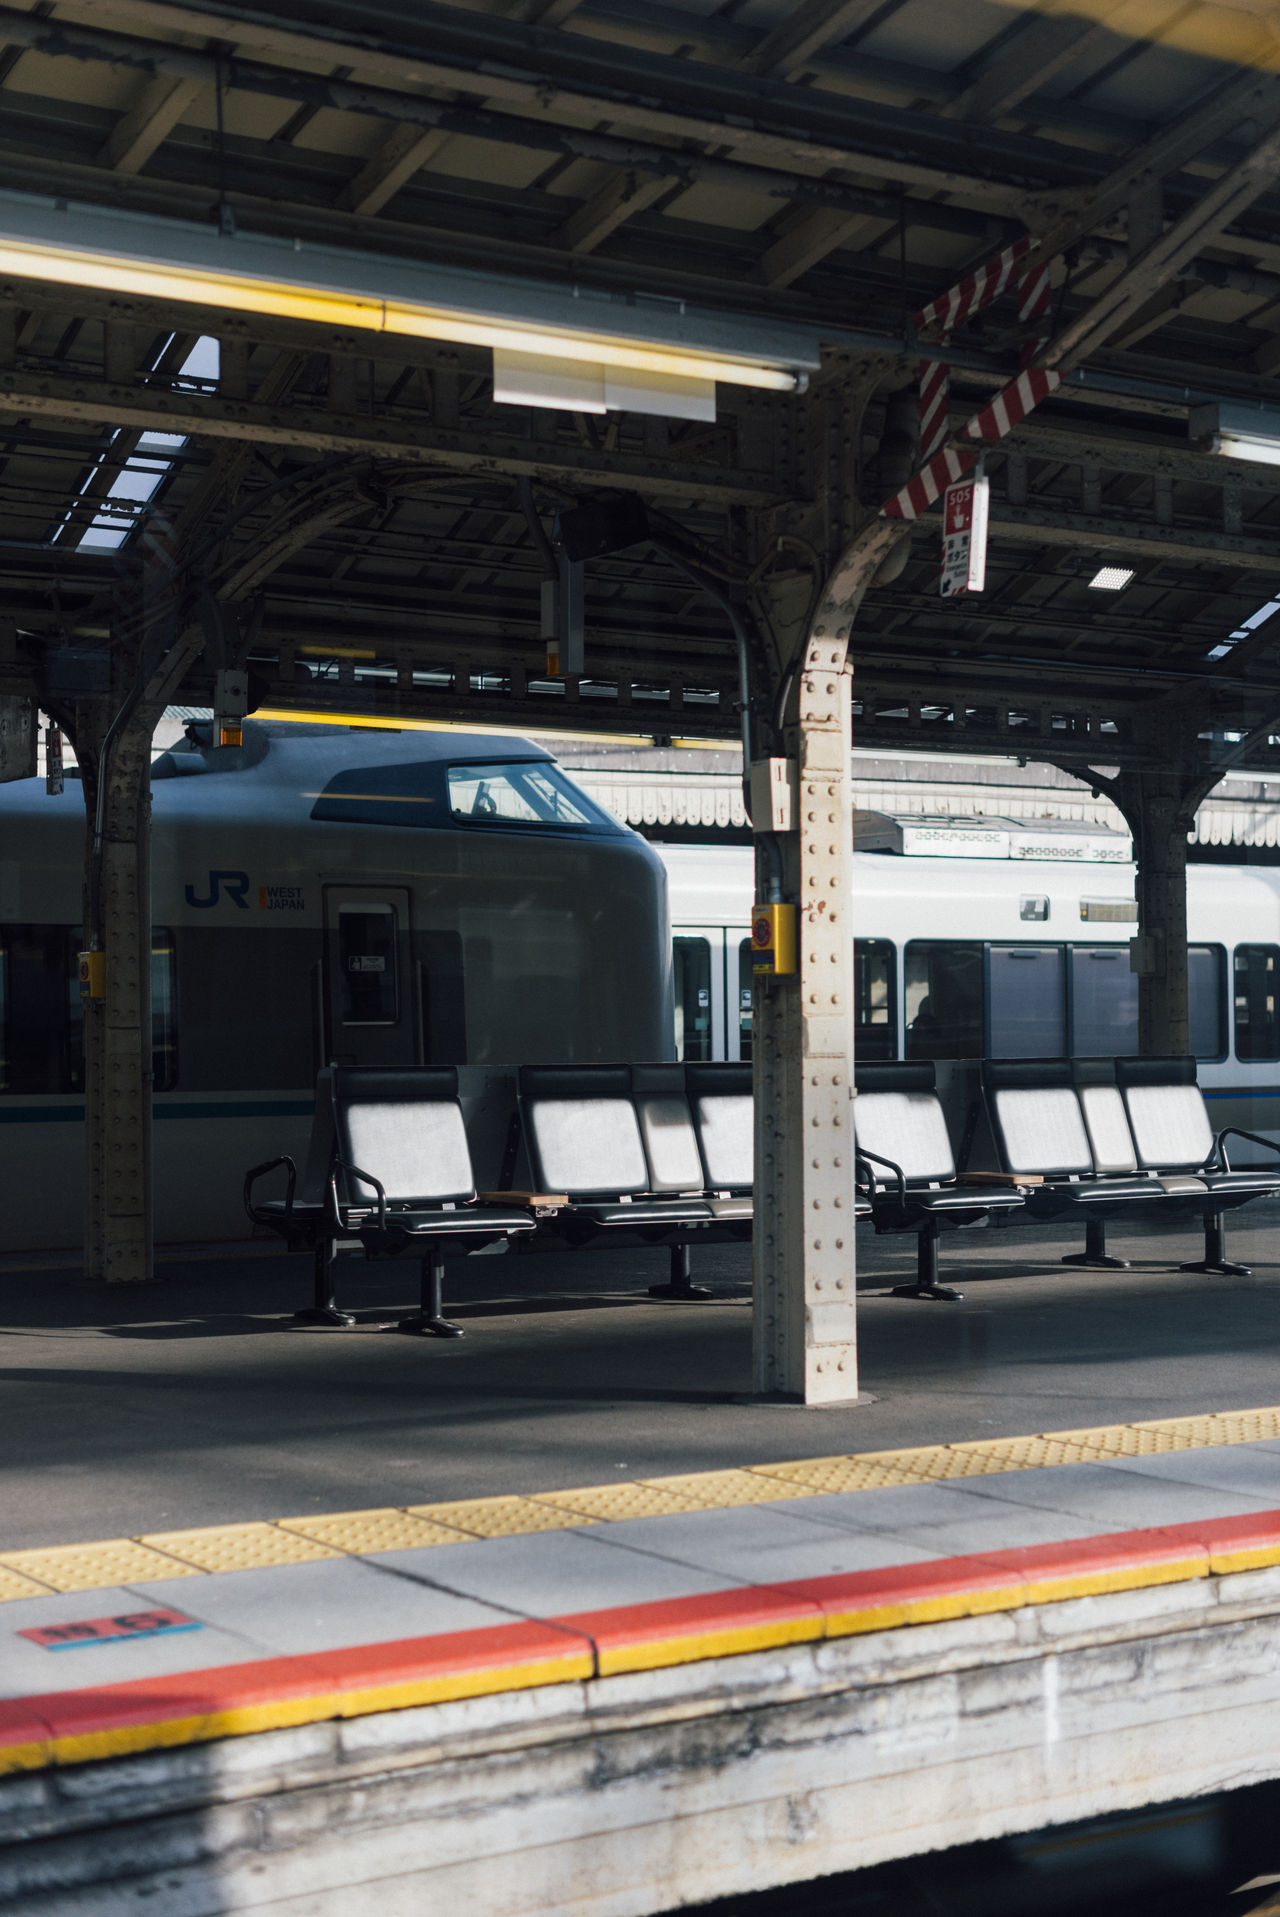 Kyoto tarvels Commuting Day Industry Light And Shadow Morning Morning Light No People Platform Red Seat Train Train Station Tranquil Scene Tranquility Transportation Travel Travel Destinations Urban Yellow